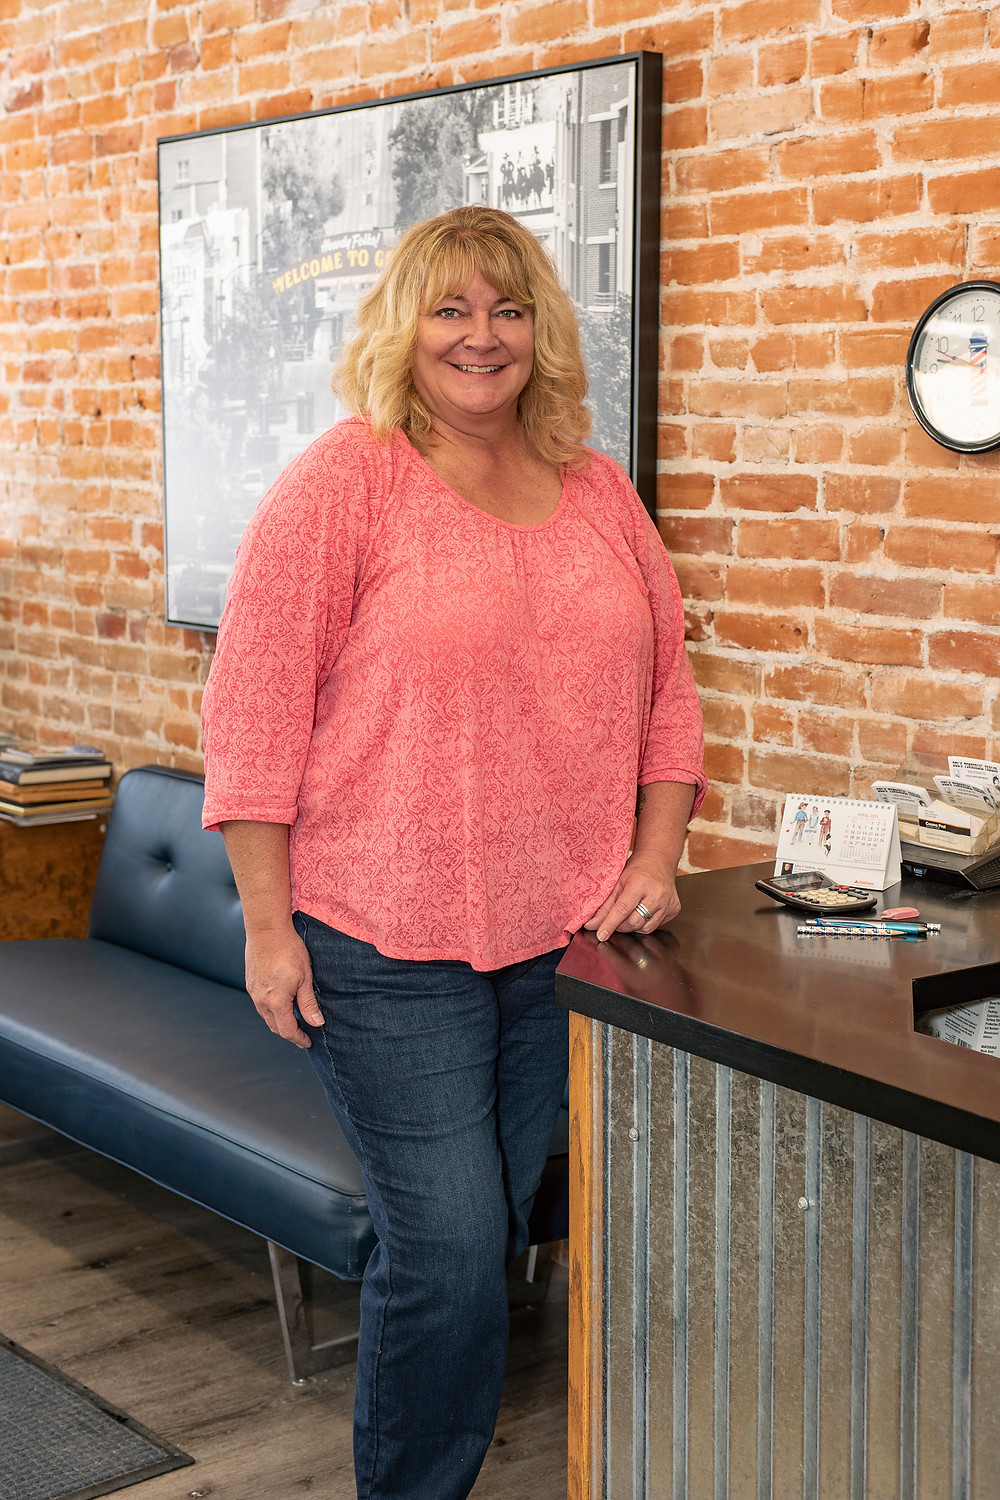 Barb Robie wearing a pink shirt standing in her salon.